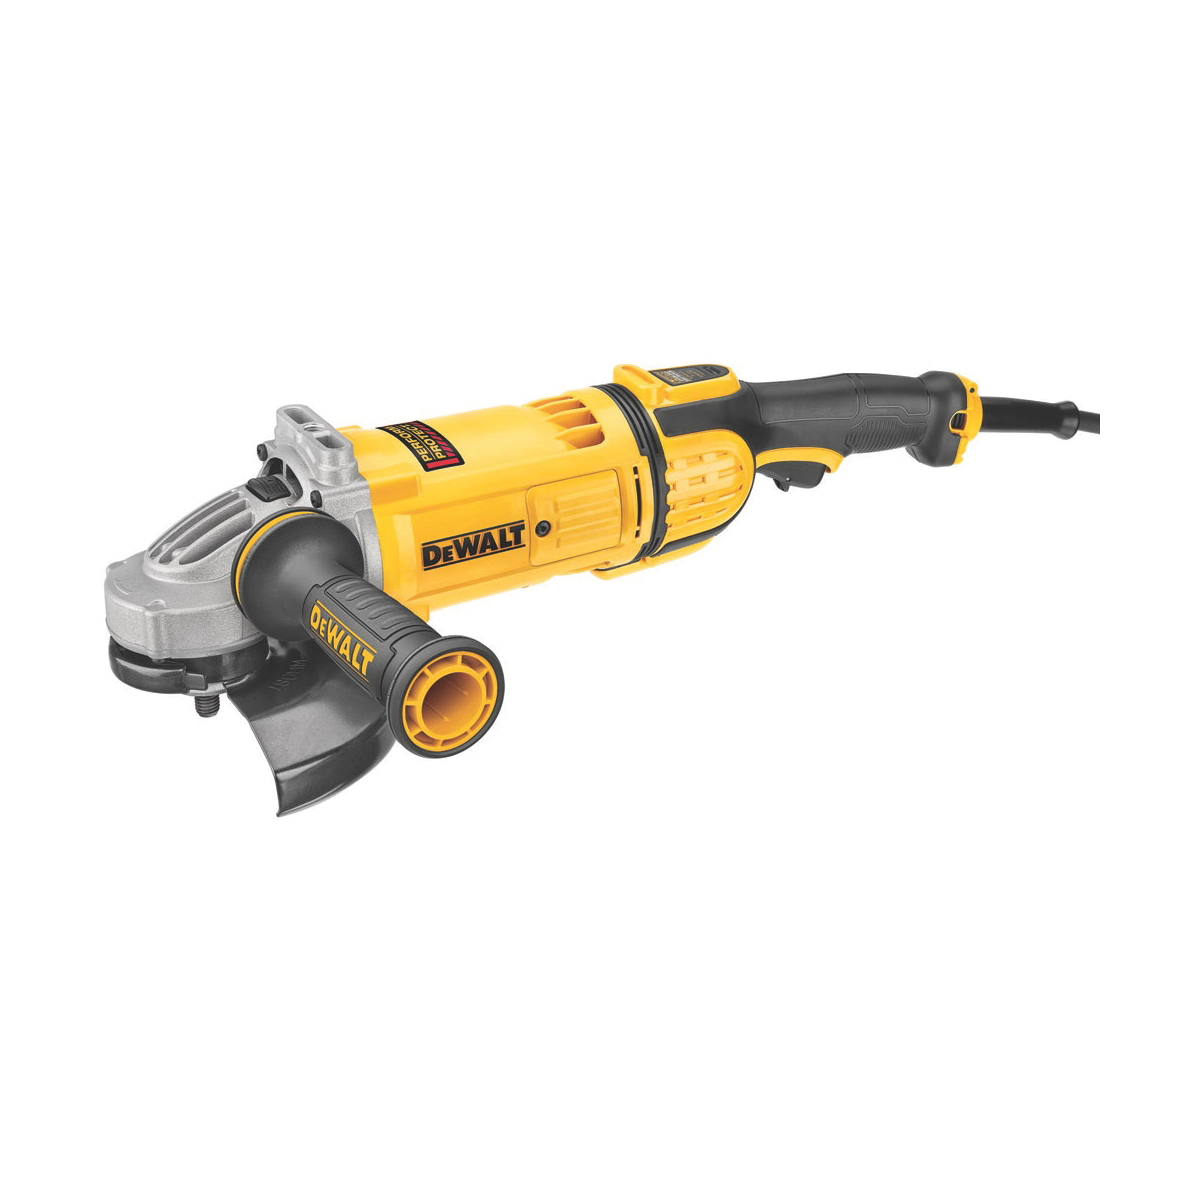 DeWALT® DWE4597N Protect™ Large Angle Grinder, 7 in Dia Wheel, 5/8-11 Arbor/Shank, 120 VAC, Yellow, Yes, Lock-ON/OFF Trigger Switch